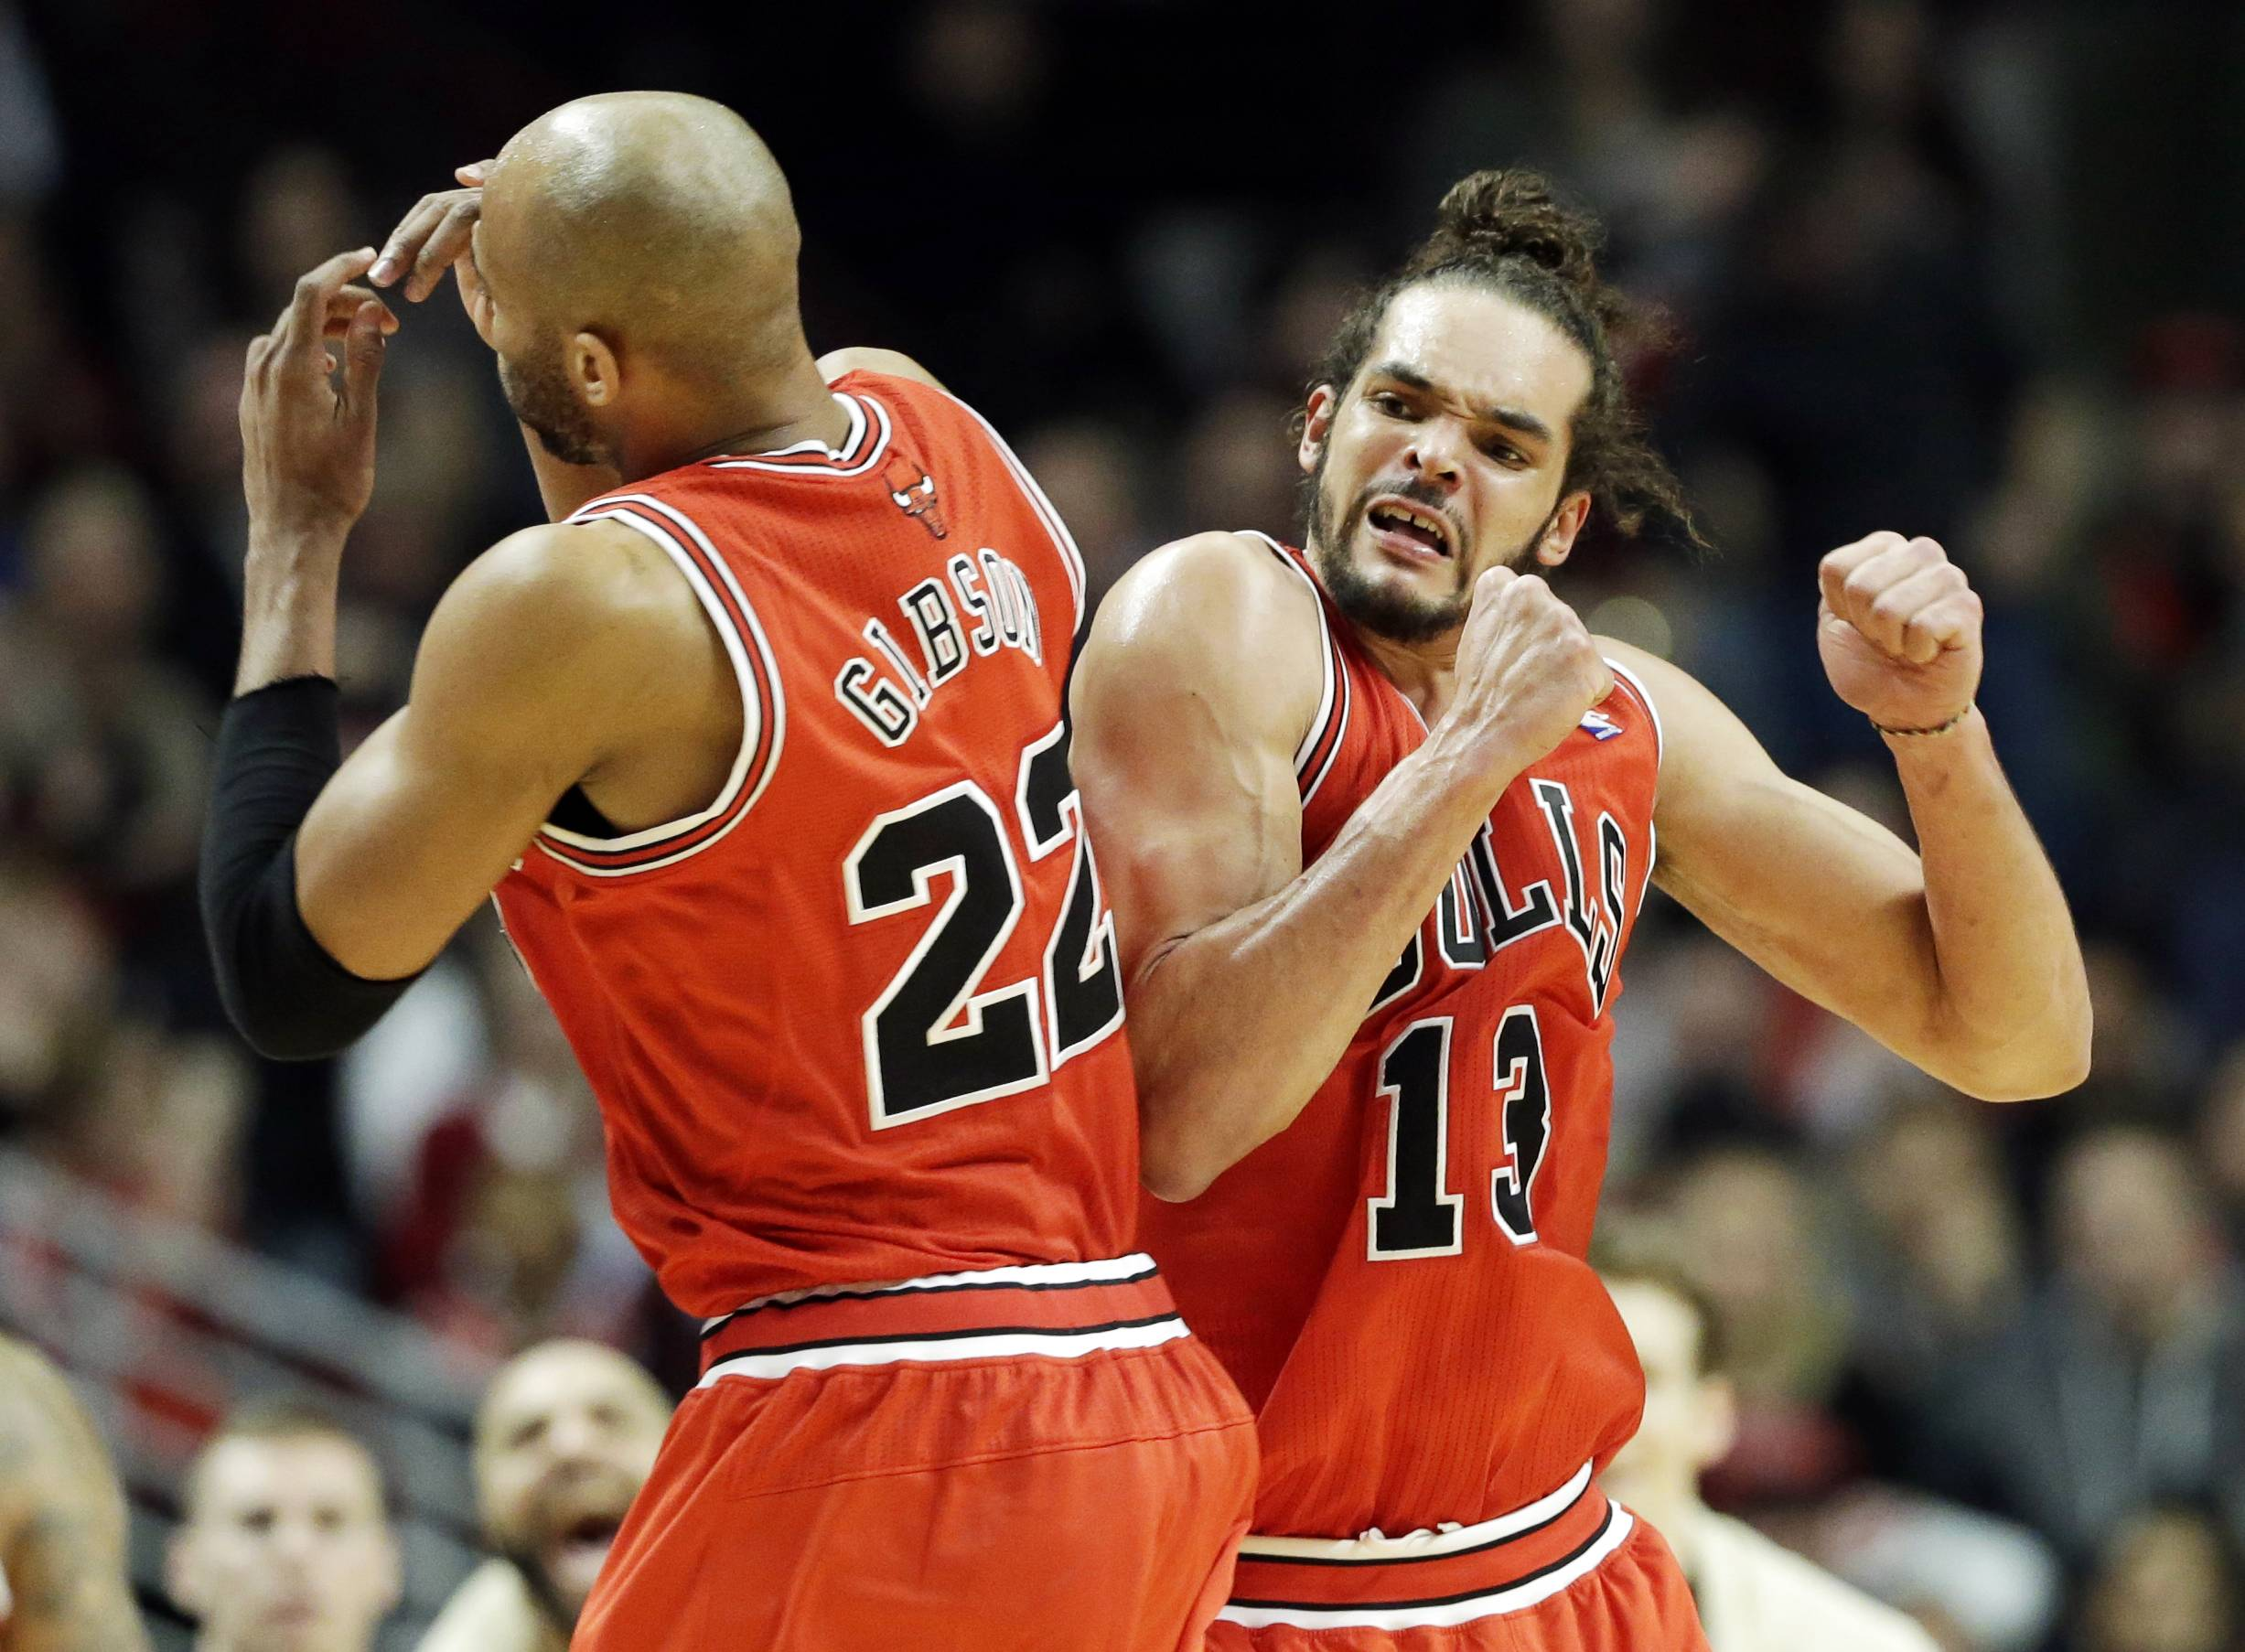 The Bulls' Joakim Noah, right, is heading to New Orleans for his second All-Star Game appearance Sunday, while teammate Taj Gibson is planning a weekend staycation.